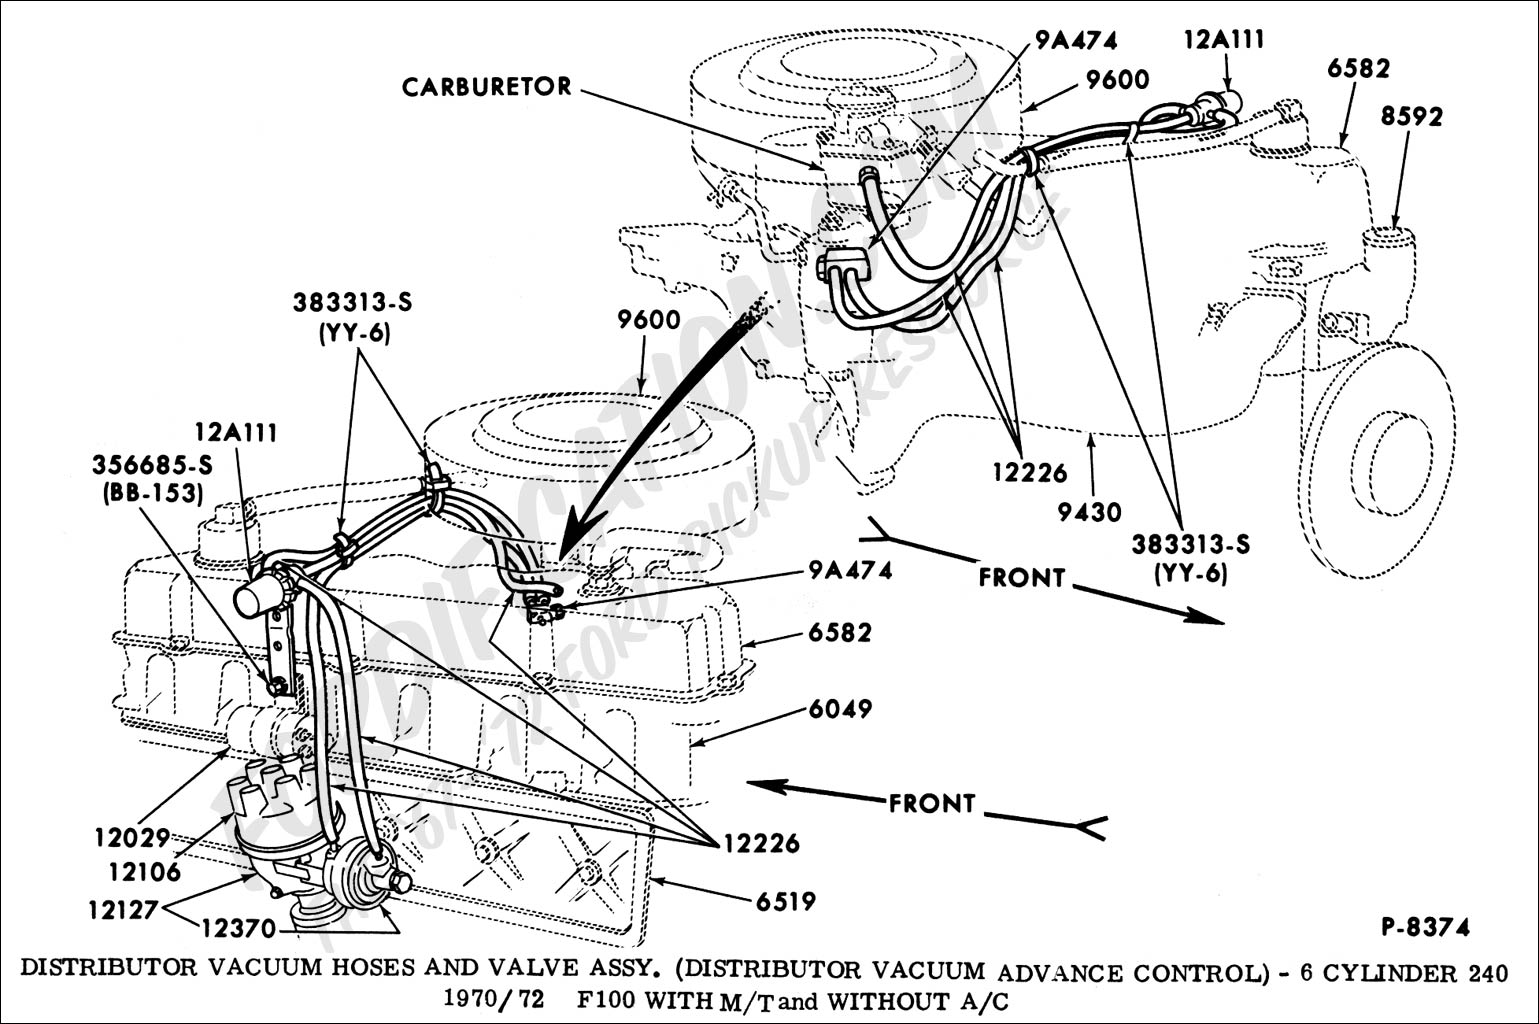 86 Jeep Cherokee Wiring Diagram furthermore Schematics i further Discussion T16270 ds545905 furthermore 2icp2 1998 Dodge Durango Replace Neutral Saftey further Dodge 3 7 V6 Crankshaft Sensor Location. on jeep transmission t 150